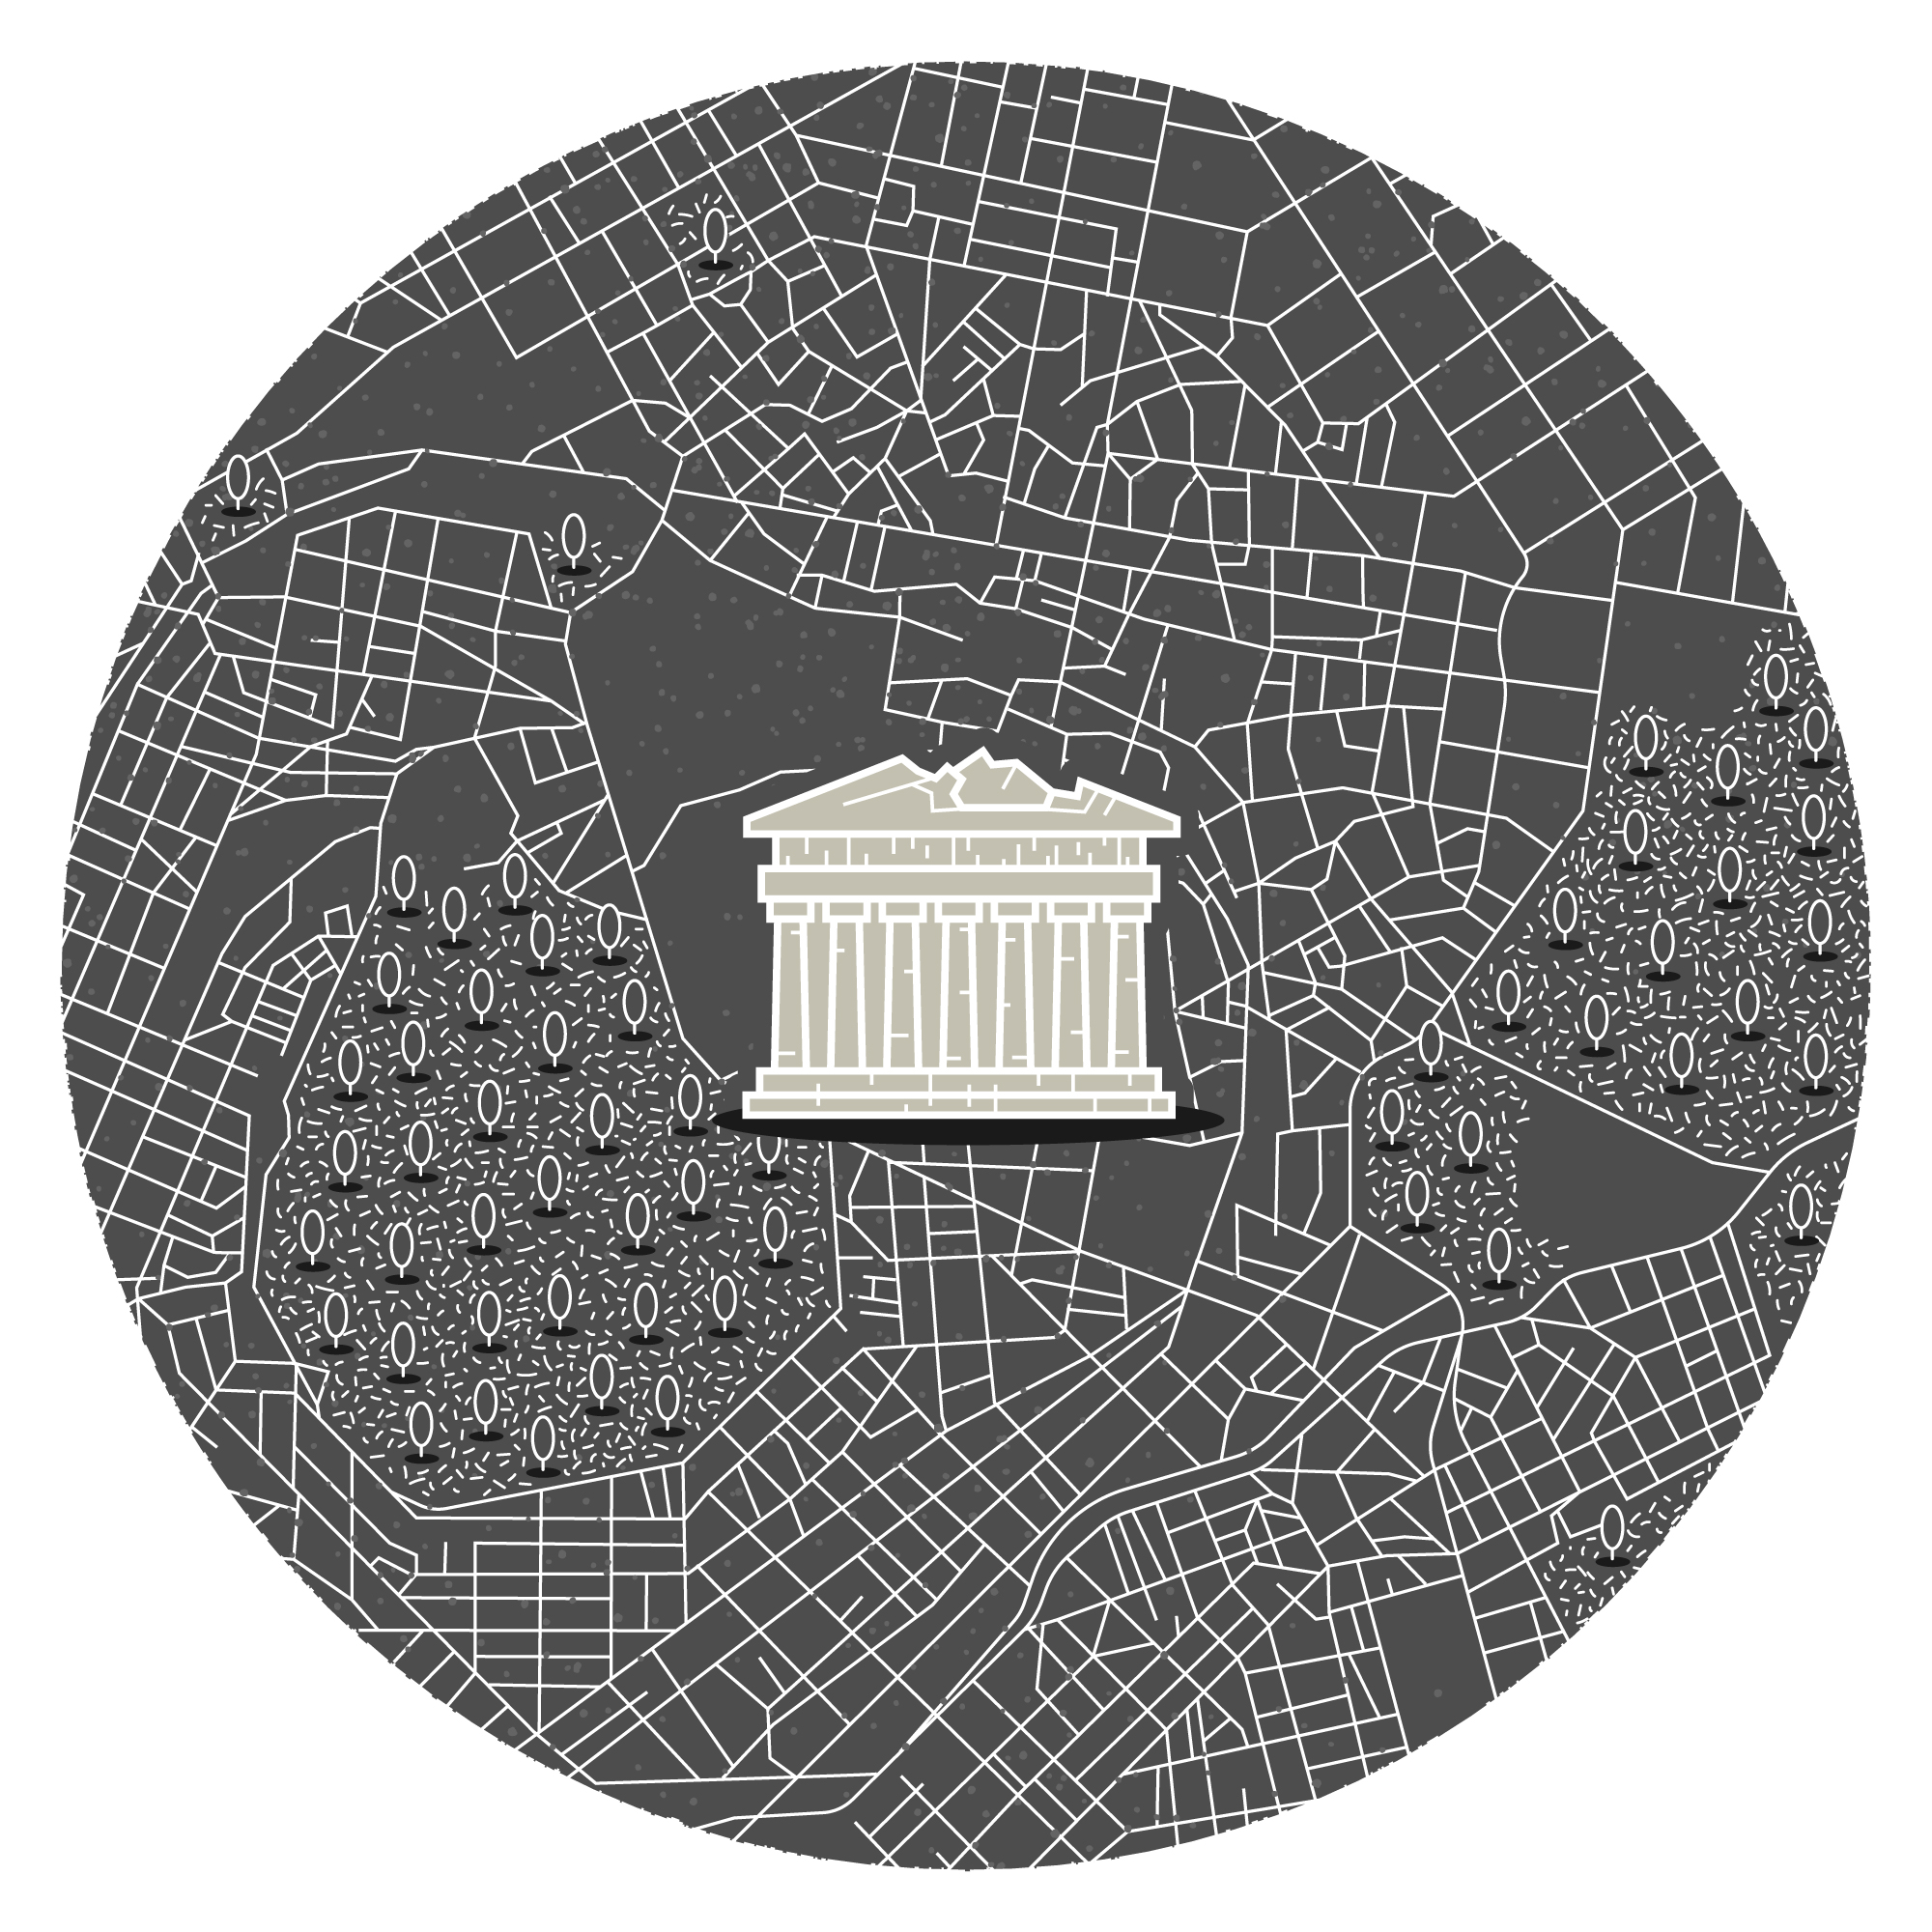 Mini illustrated map of Athens